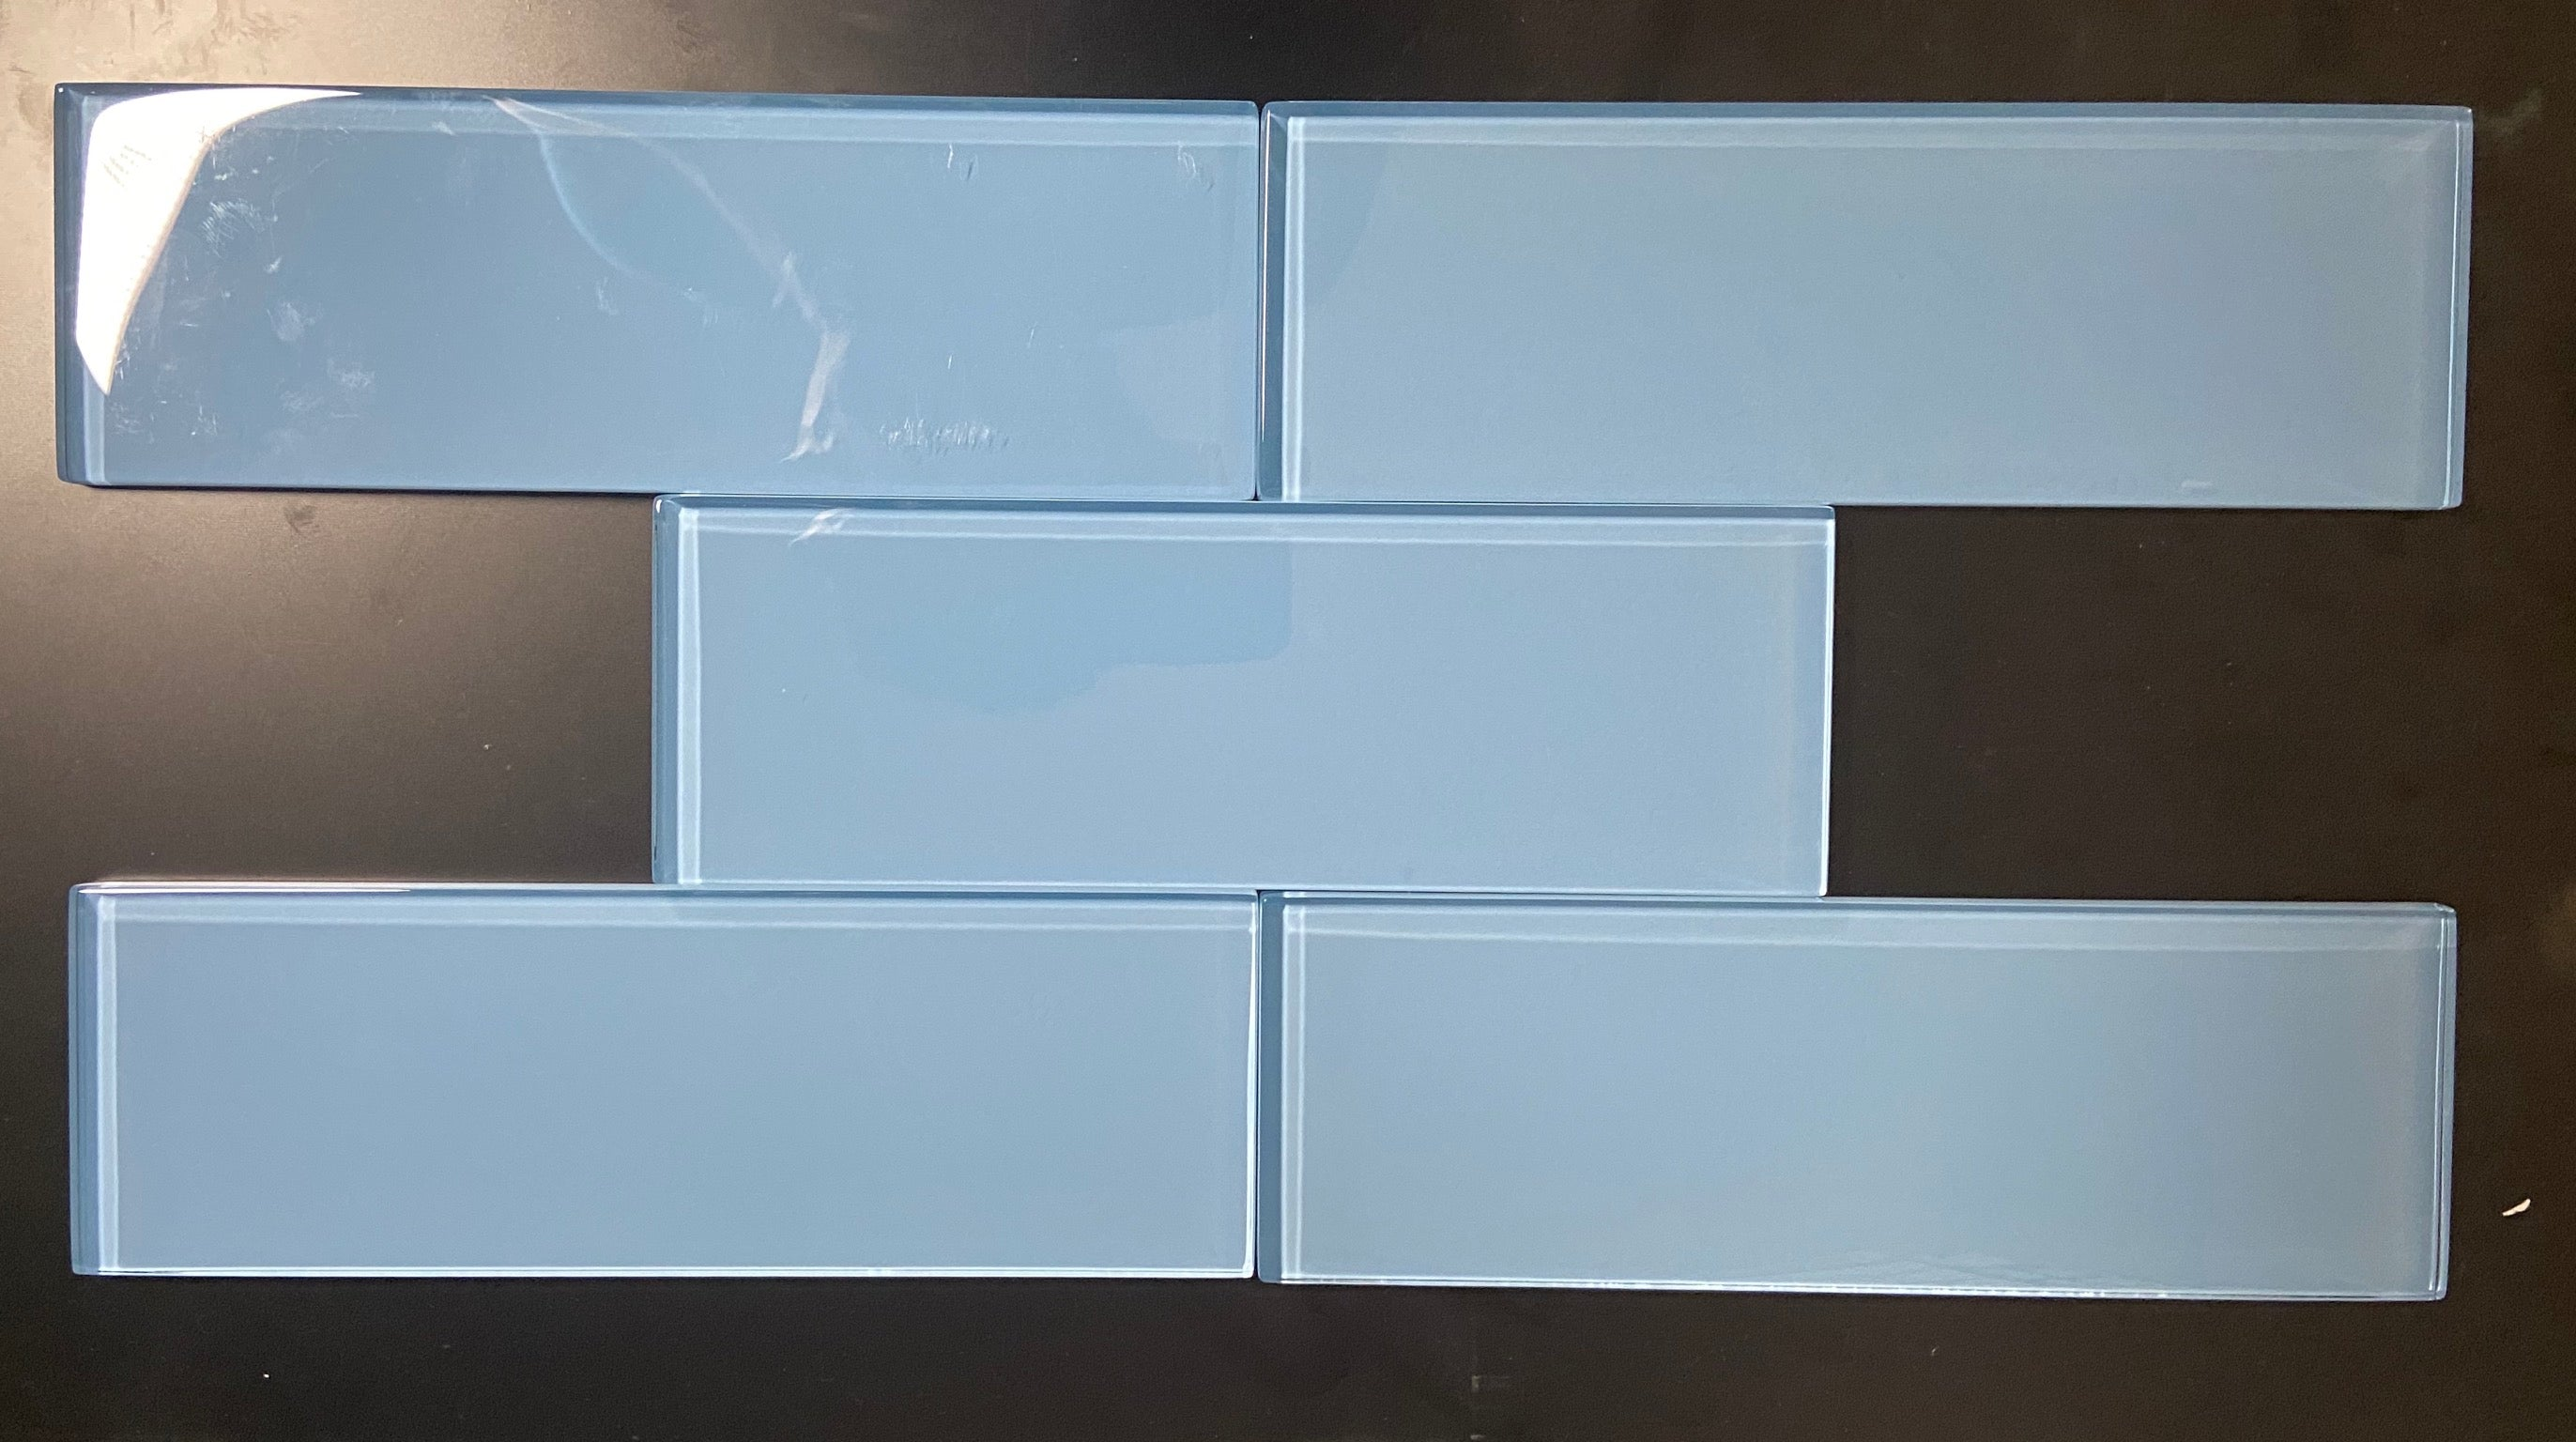 Premium Quality Pacific Blue 3x9 Glass Subway Tile for Bathroom Walls, Kitchen Backsplashes By Vogue Tile - Free Shipping